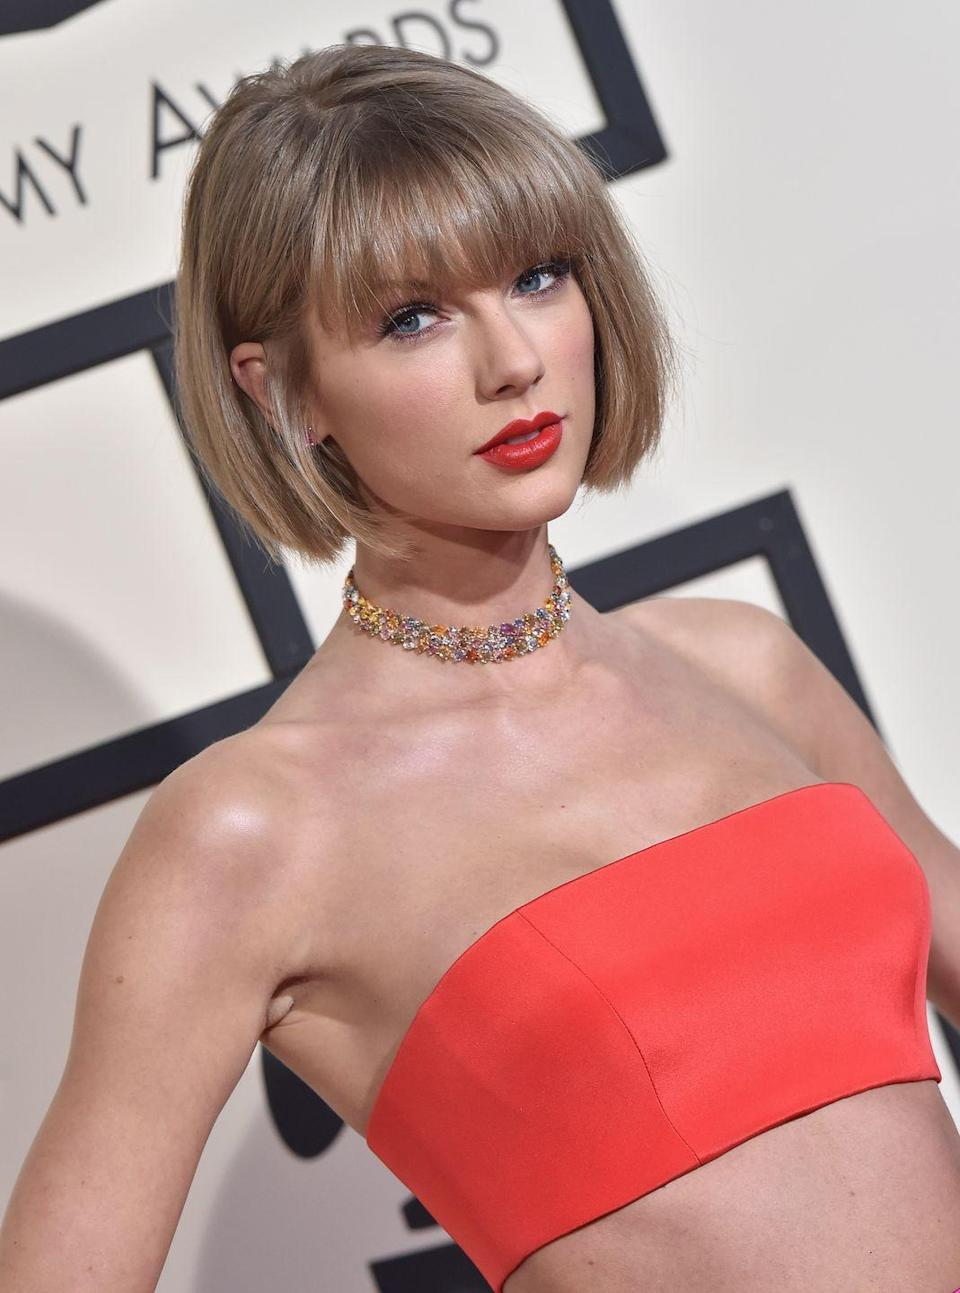 <p>The Old Taylor may be dead, but this haircut will live on forever in my 'hair inspo' Pinterest board. Back in 2016, she got the shortest crop of her life and shocked the world when she showed it off at the Grammys. Since then, she's grown it out into a '70s-style shaggy mop, but this ~fresh~ look is still a fave.</p>